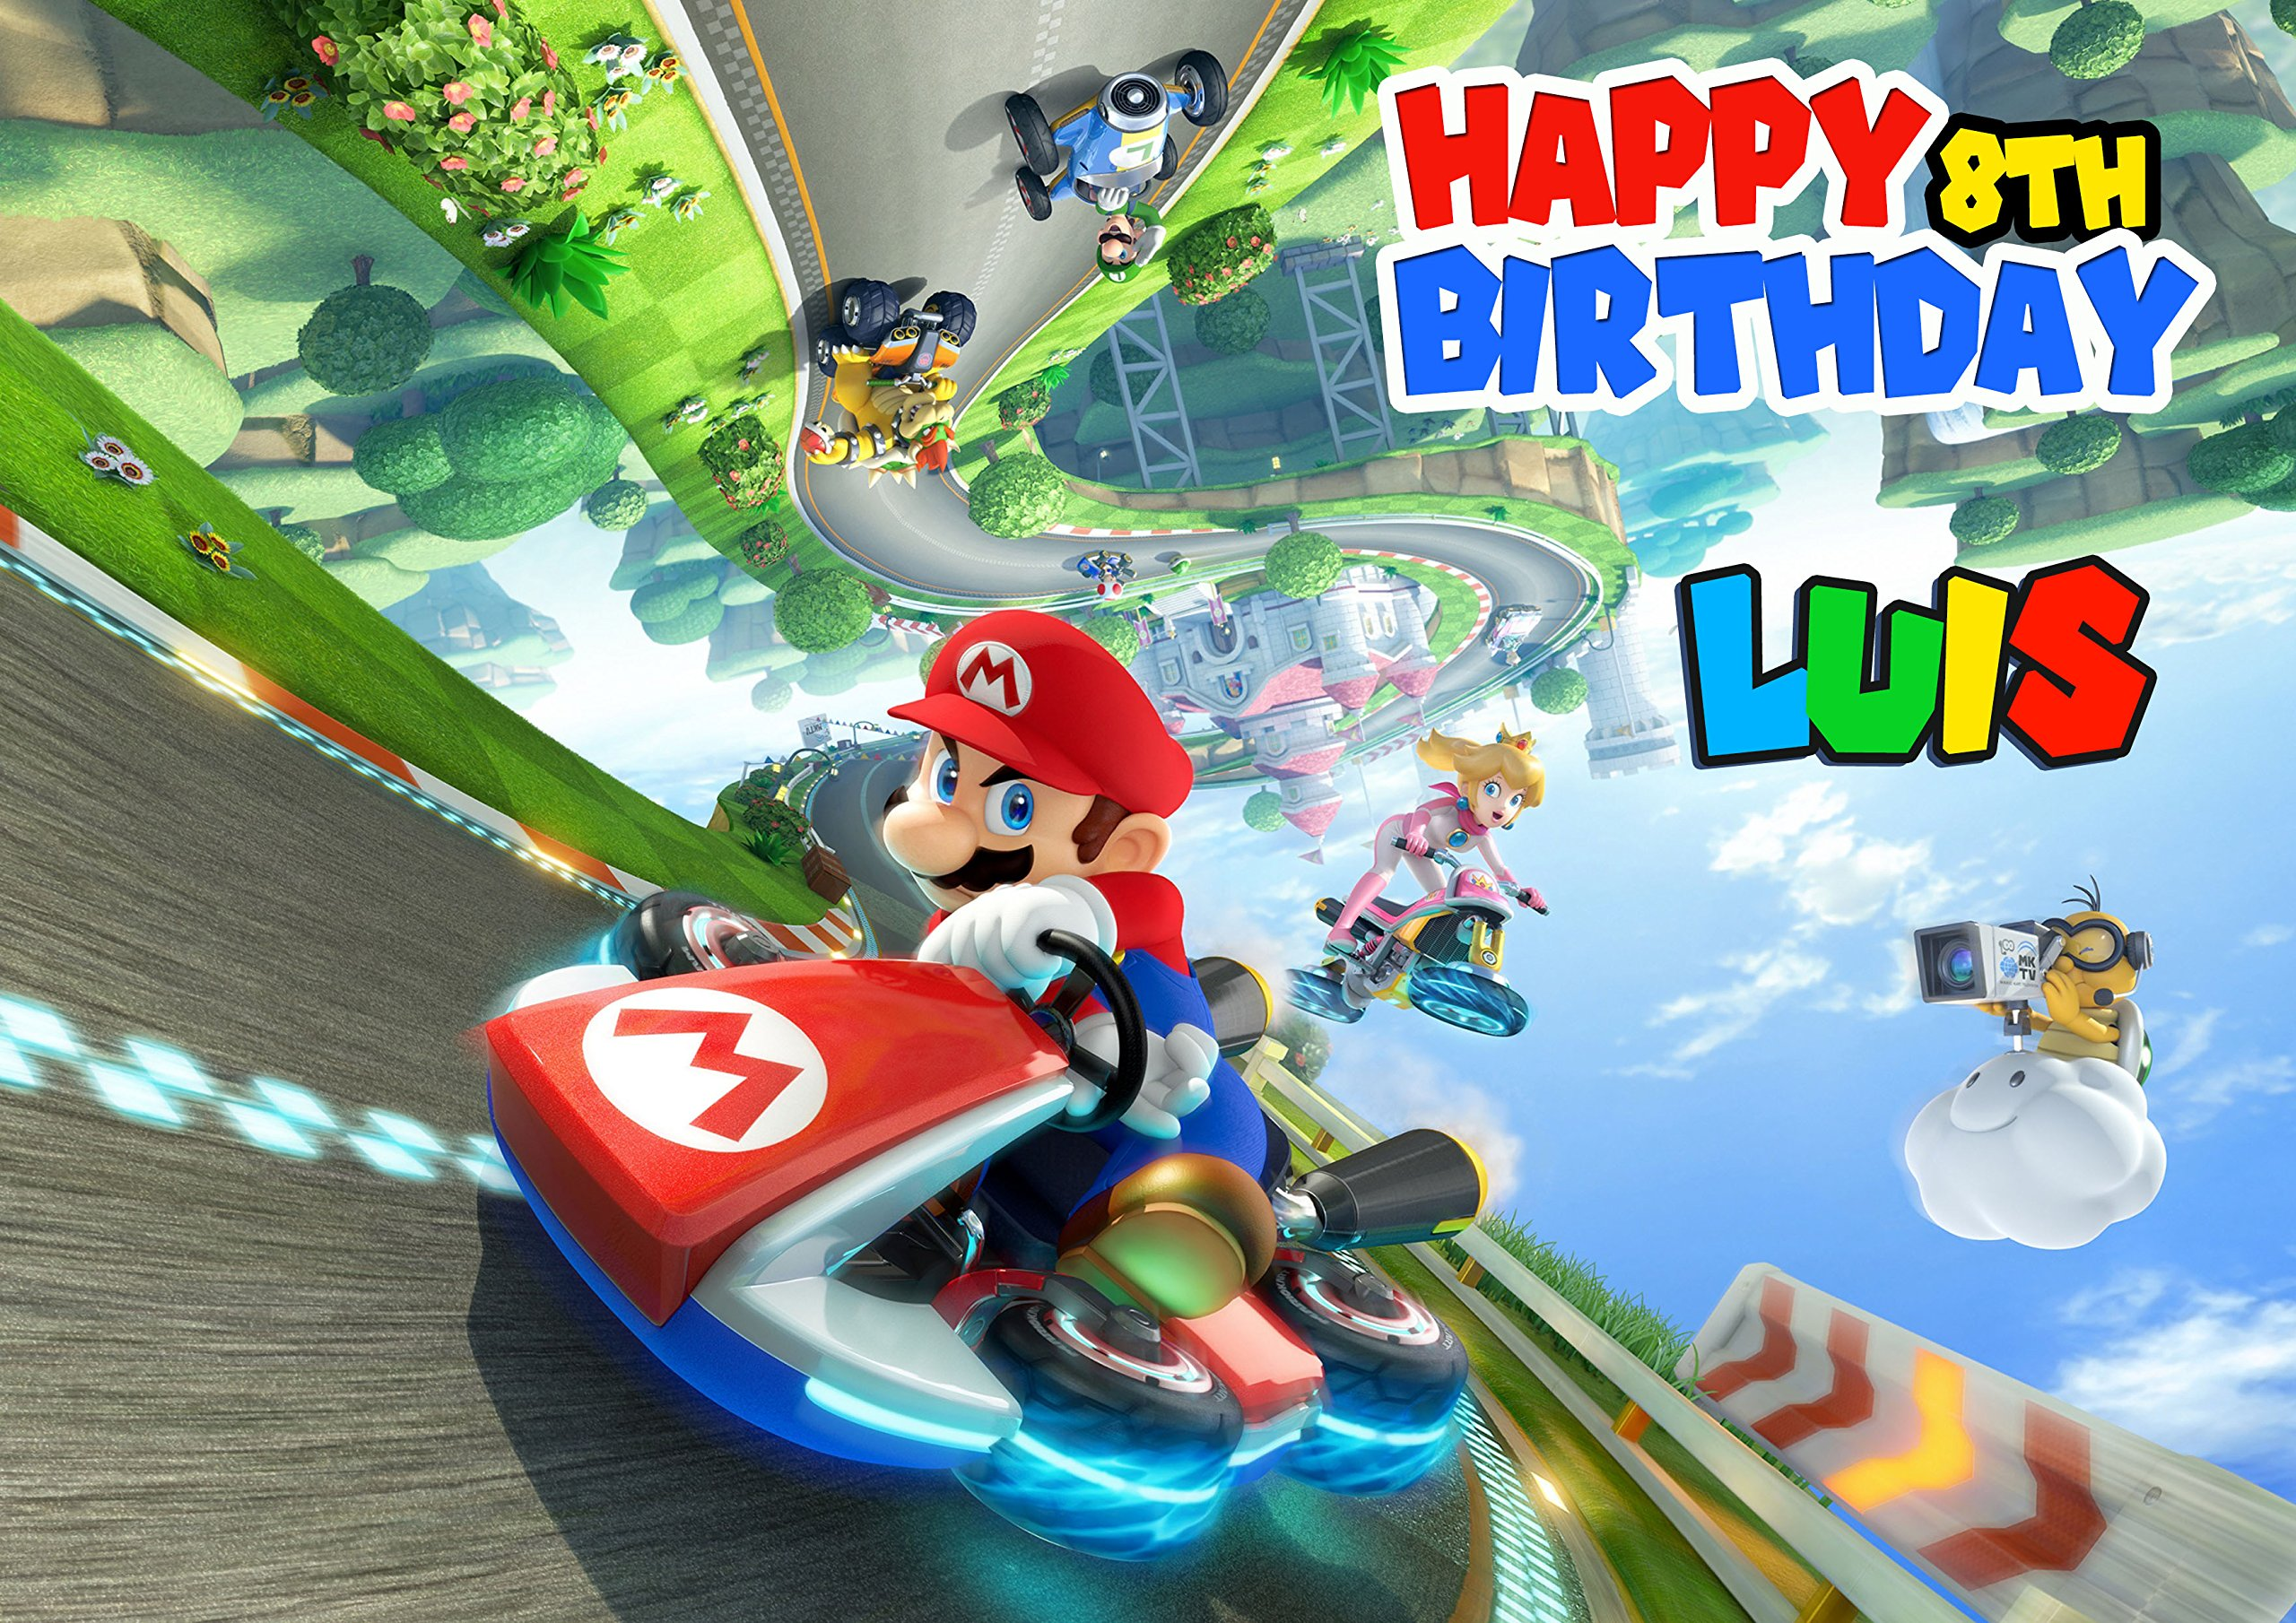 Mario Kart 8 Deluxe Edible Cake Image Personalized Icing Sugar Paper A4 Sheet Edible Frosting Photo Cake 1/4 ~ Best Quality Edible Image for cake by EdibleInkArt (Image #3)